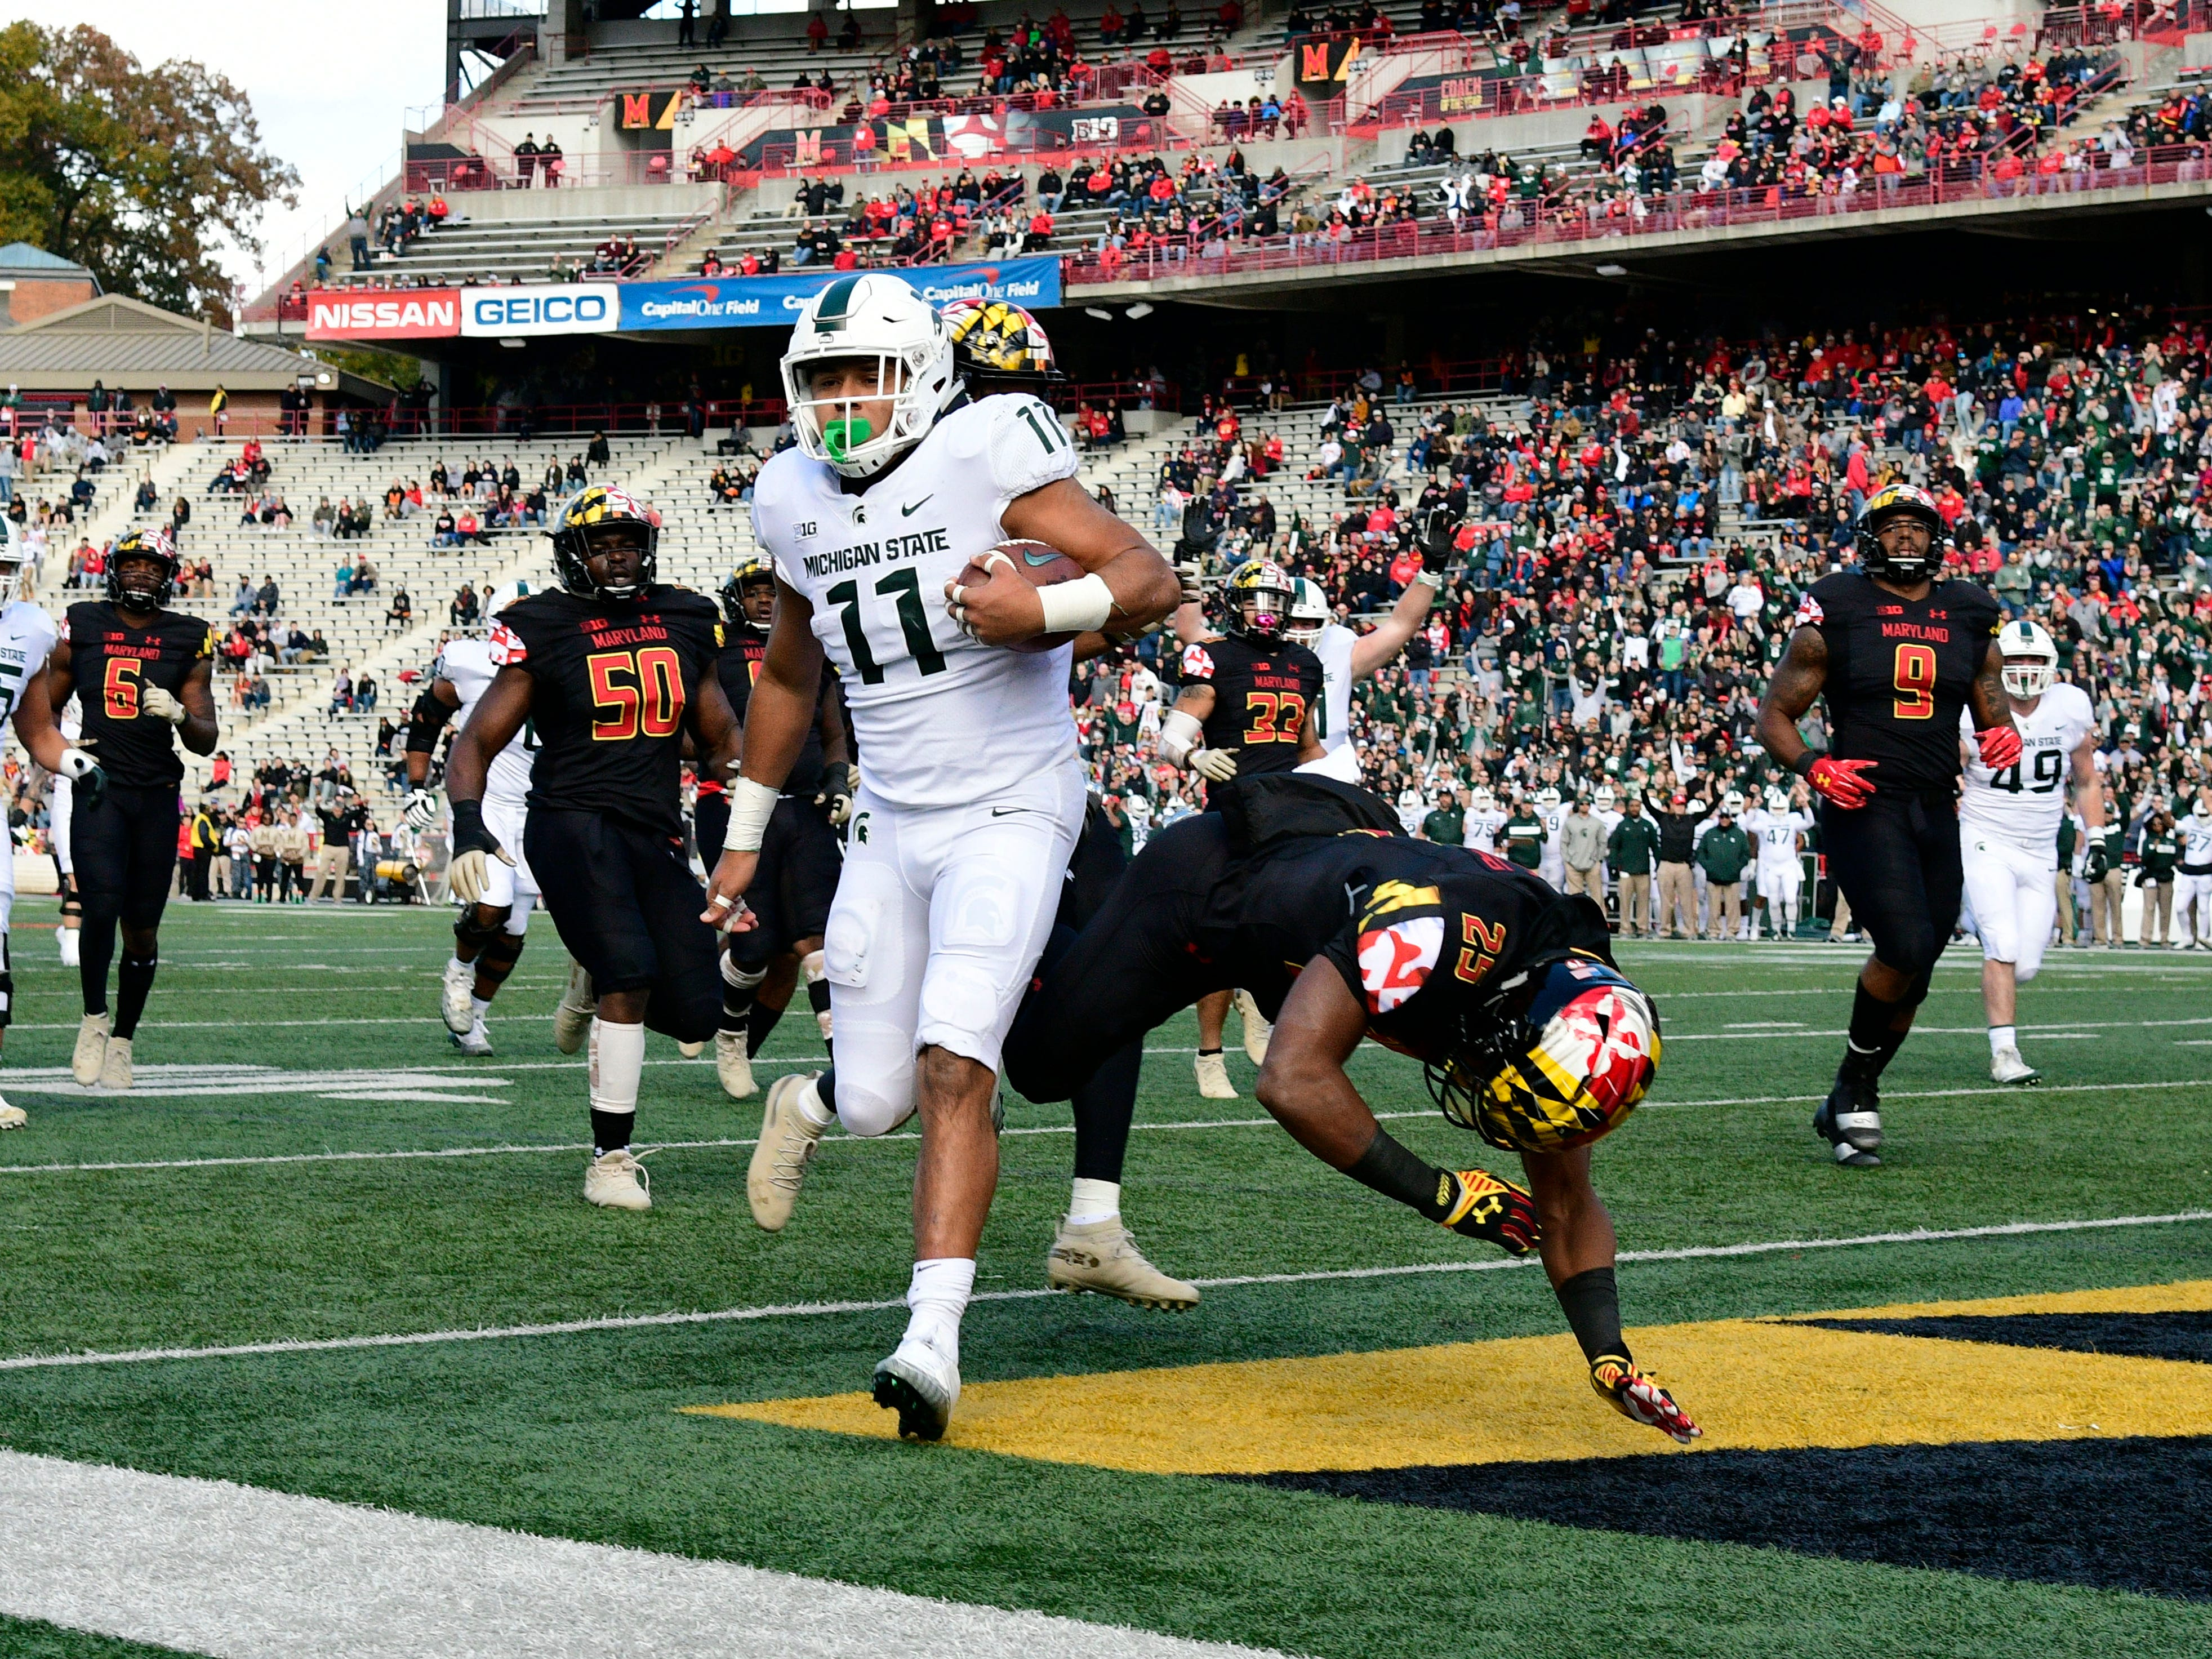 Michigan State Spartans running back Connor Heyward (11) runs past Maryland Terrapins defensive back Antoine Brooks Jr. (25) for a first down during the first quarter at Capital One Field at Maryland Stadium.